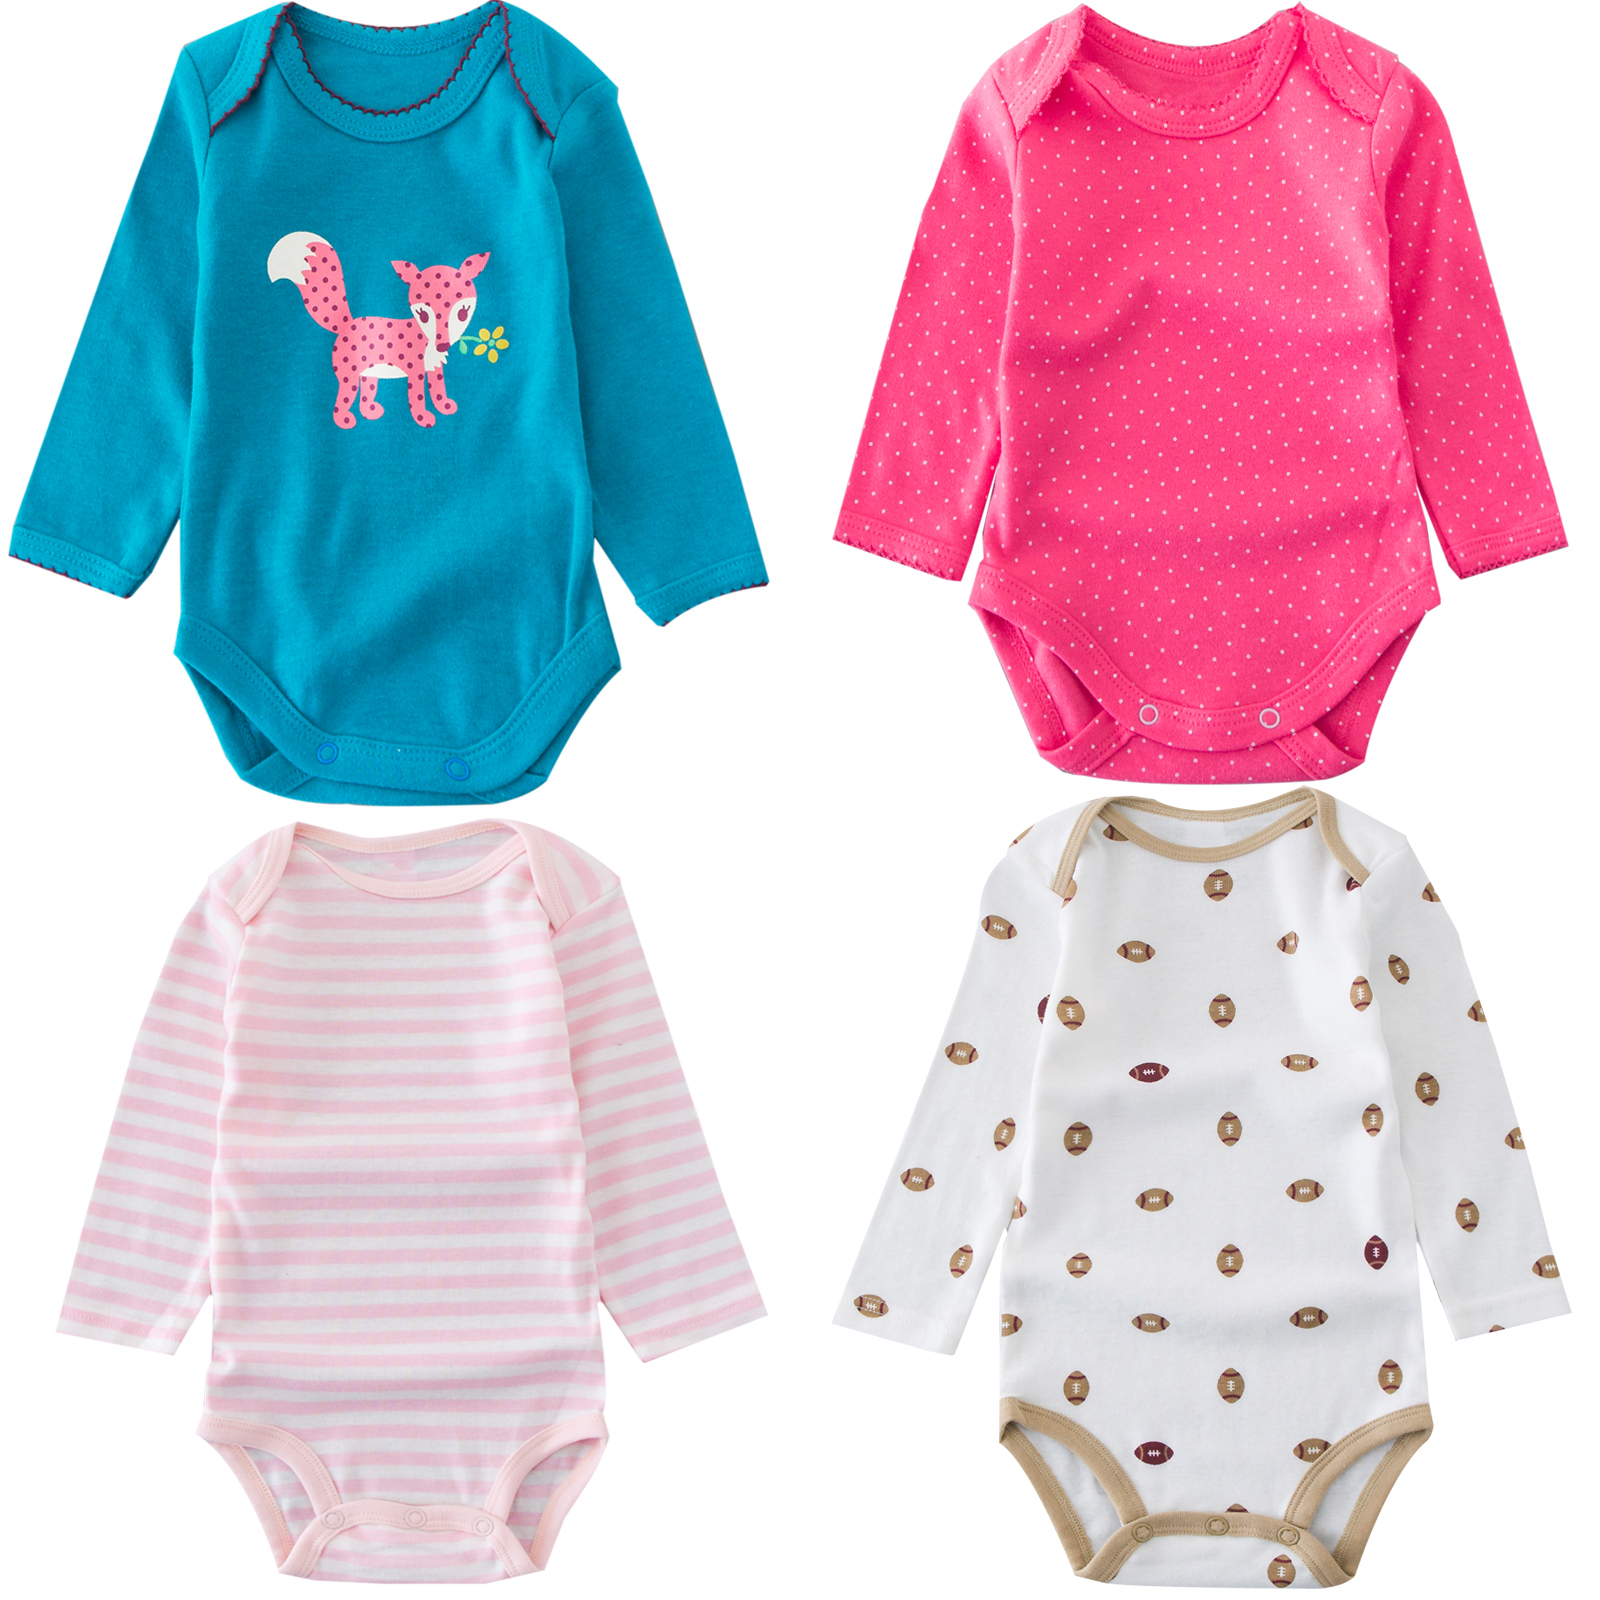 Unisex 3-24 Month 100% Cottons Onesie Baby Boy Clothes Bodysuit Long Sleeve Newborn Baby One-Pieces O-neck Baby Girls Clothes